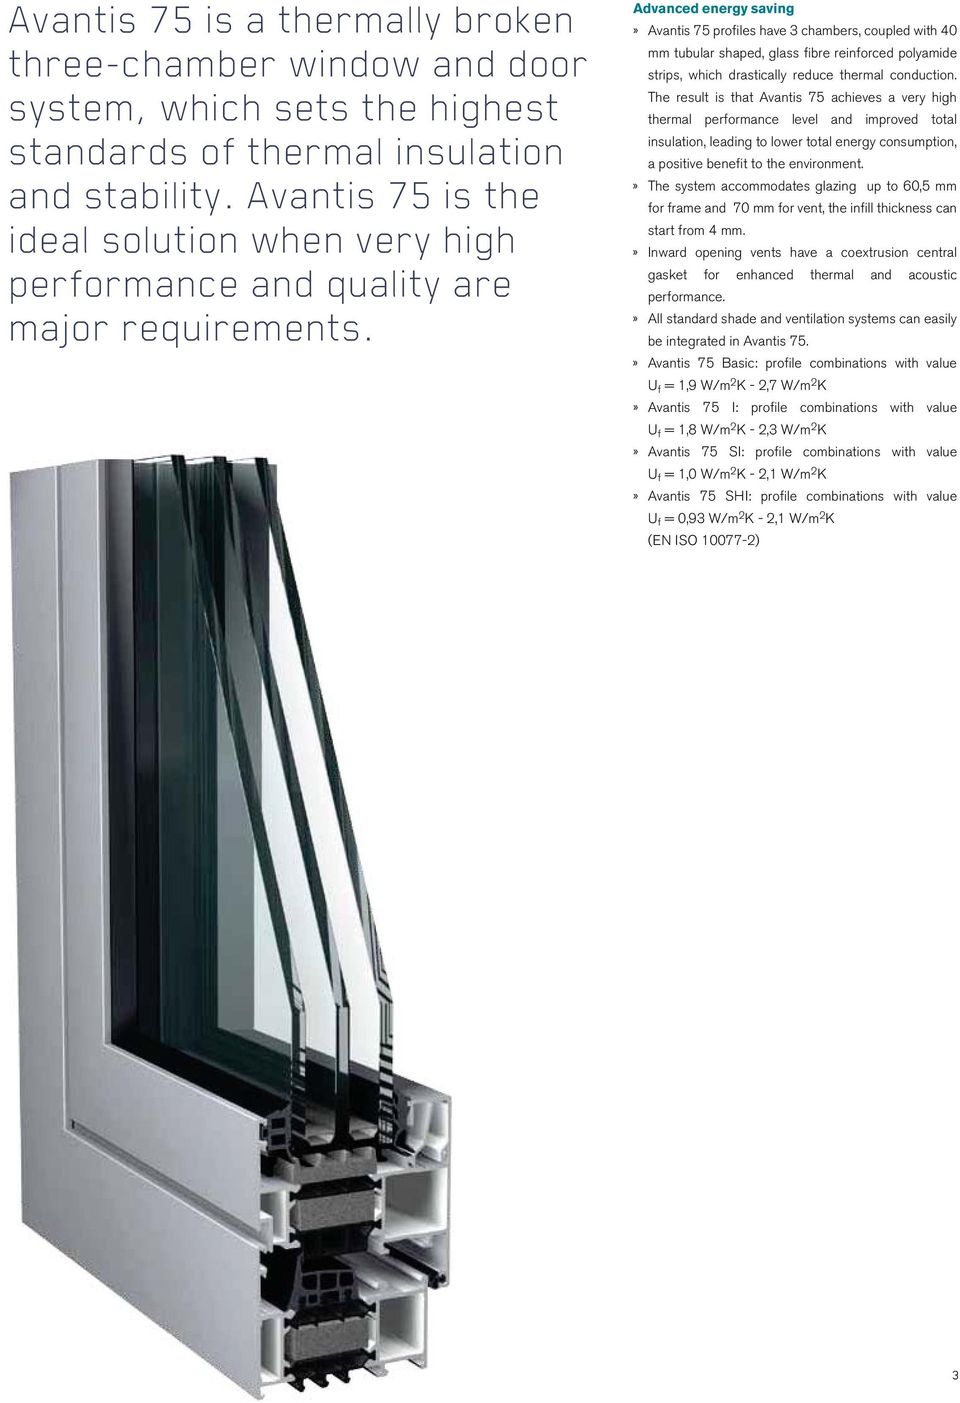 Advanced energy saving» Avantis 75 profiles have 3 chambers, coupled with 40 mm tubular shaped, glass fibre reinforced polyamide strips, which drastically reduce thermal conduction.